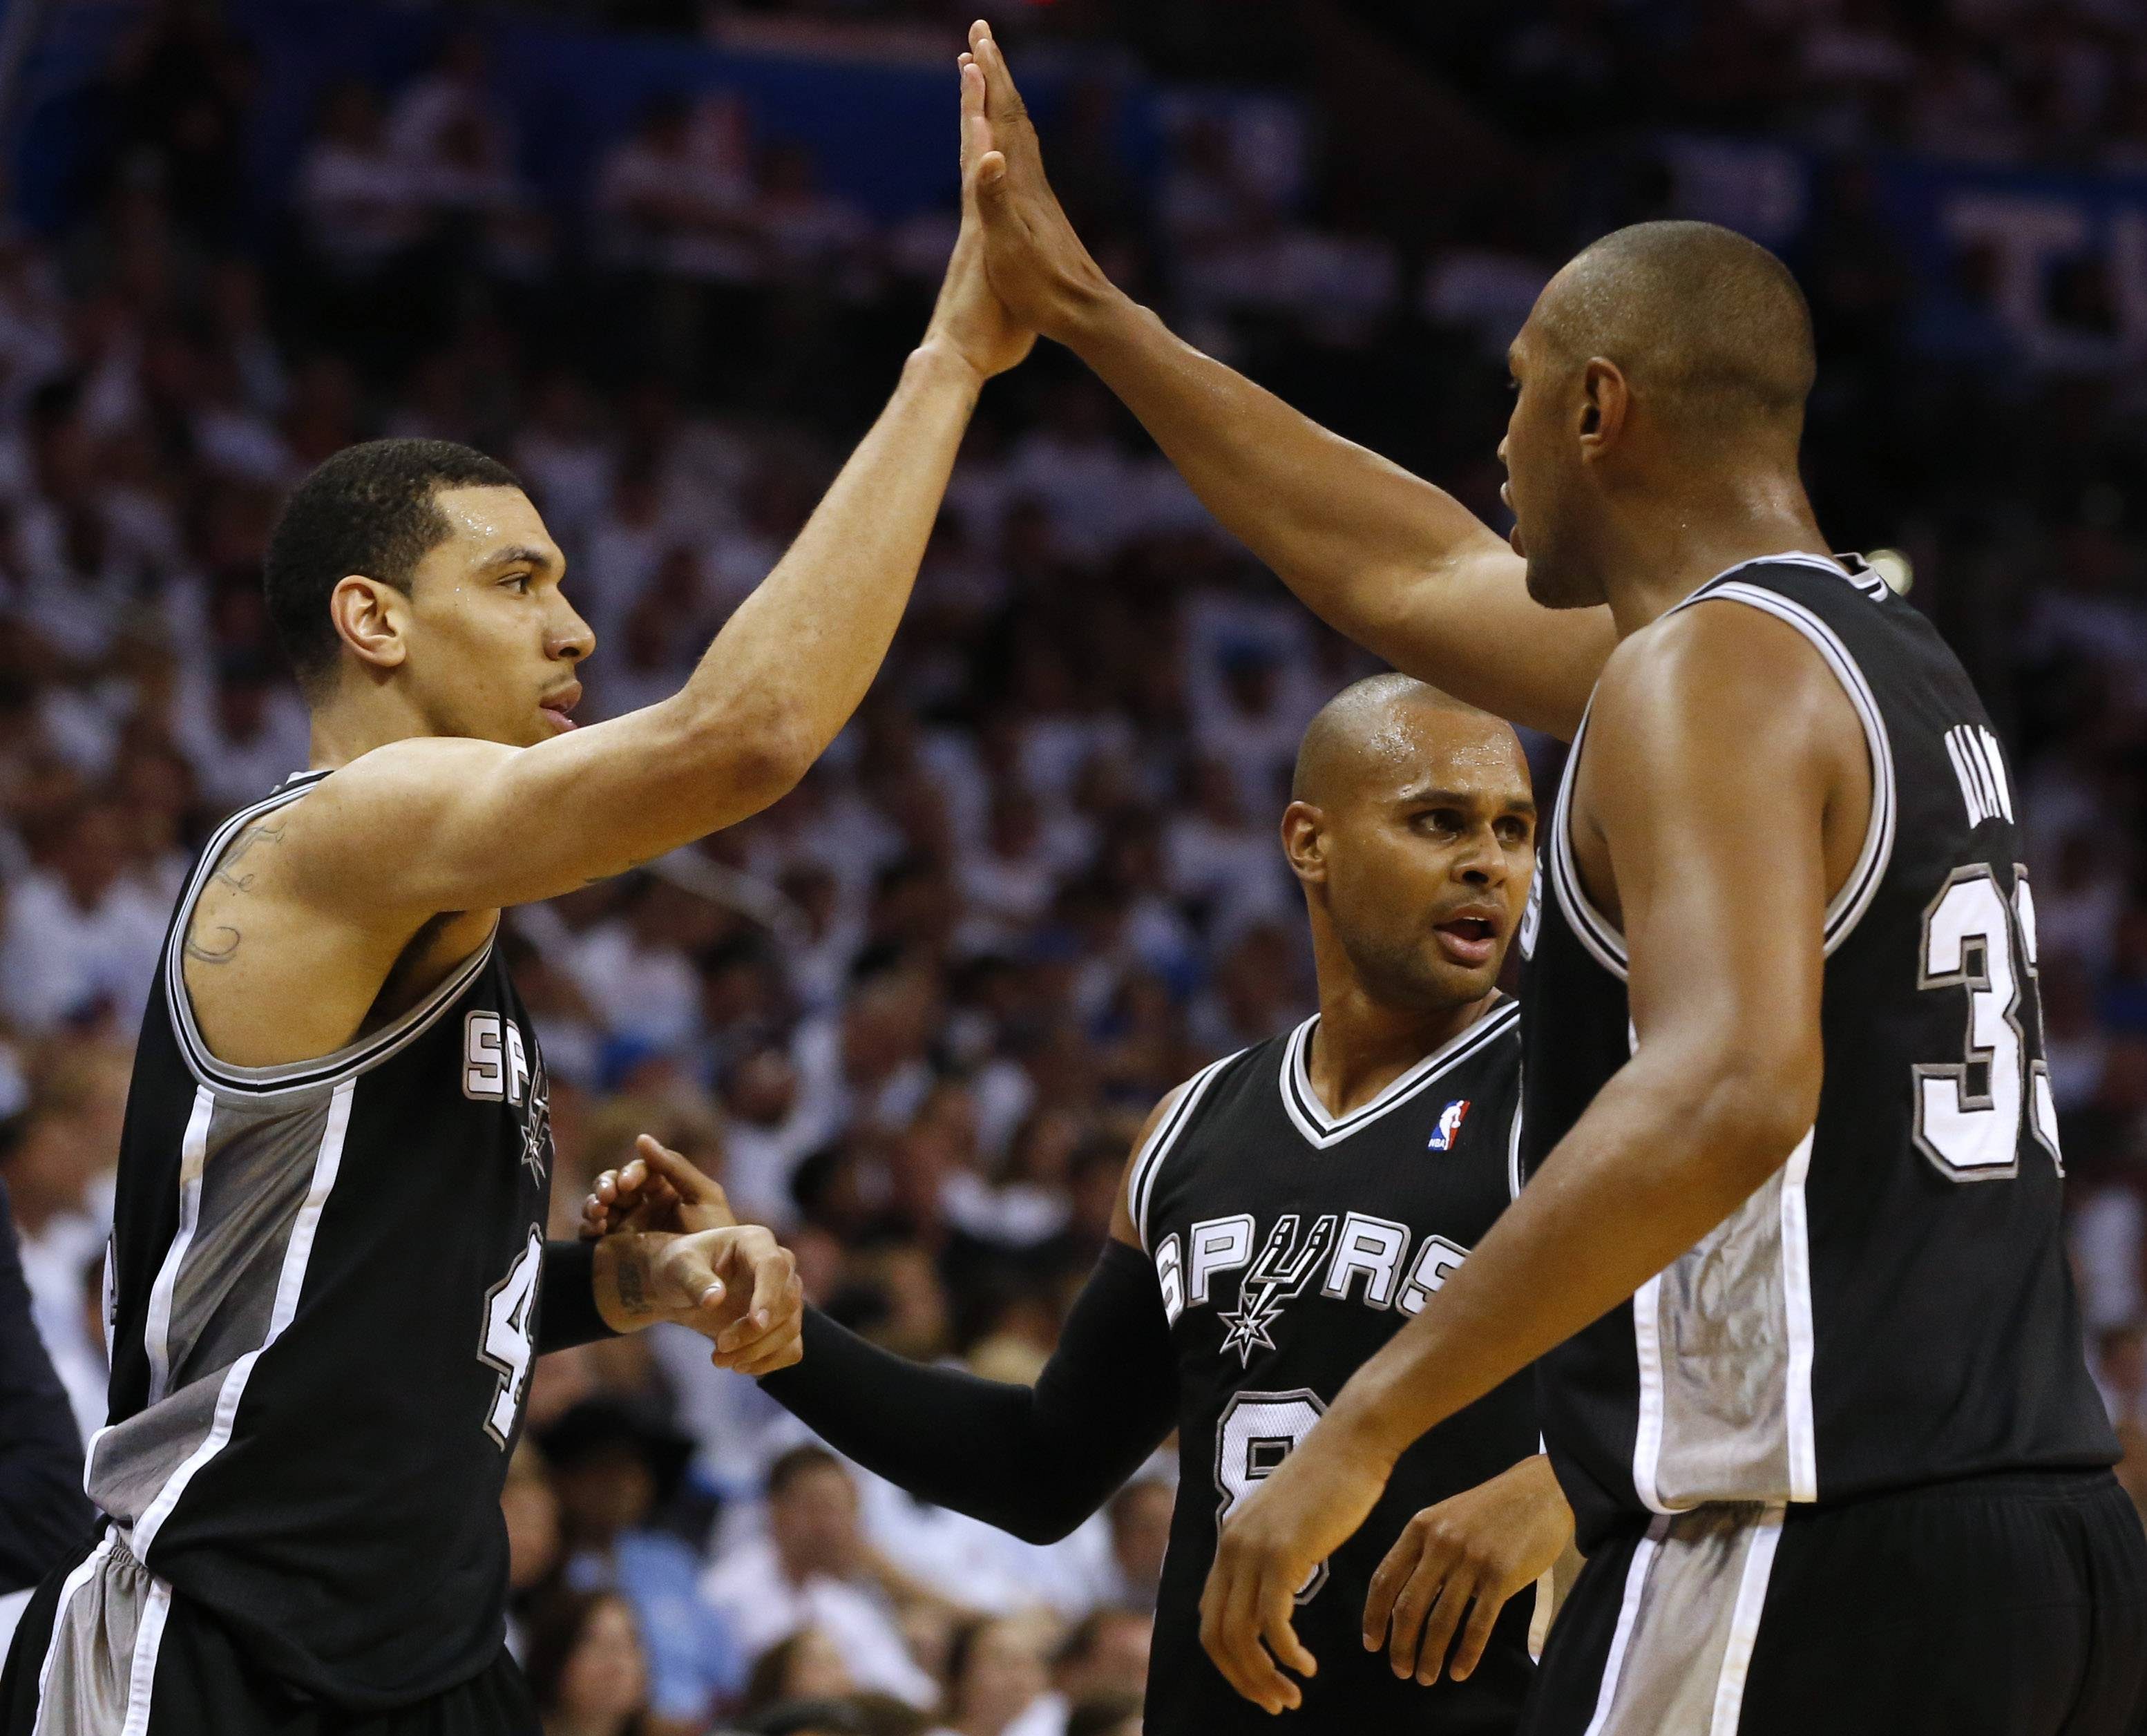 Rematch time: Spurs vs. Heat in NBA Finals